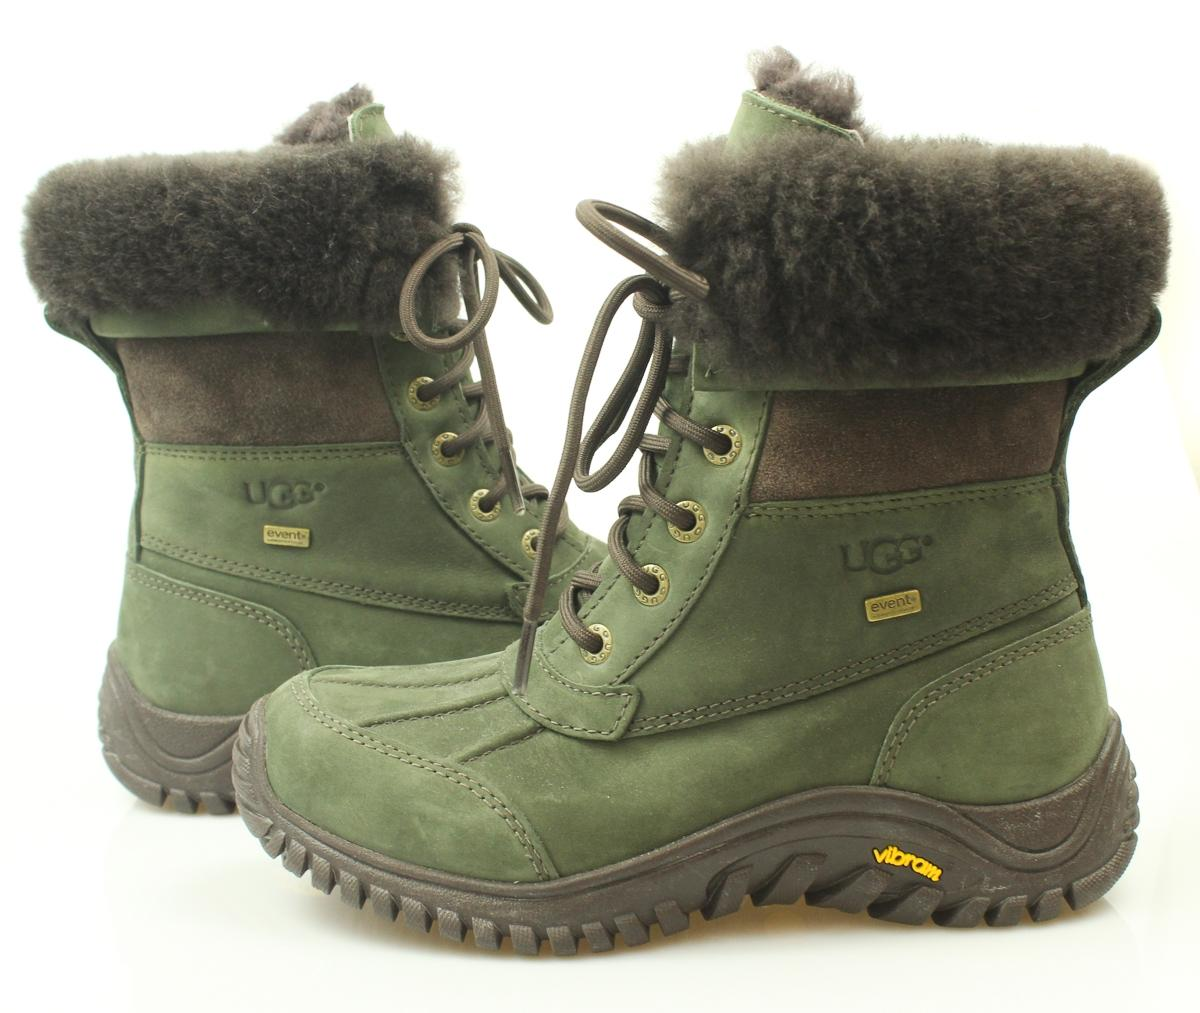 UGG Australia Fur Winter Casual Army Green Boots. 1234567891011